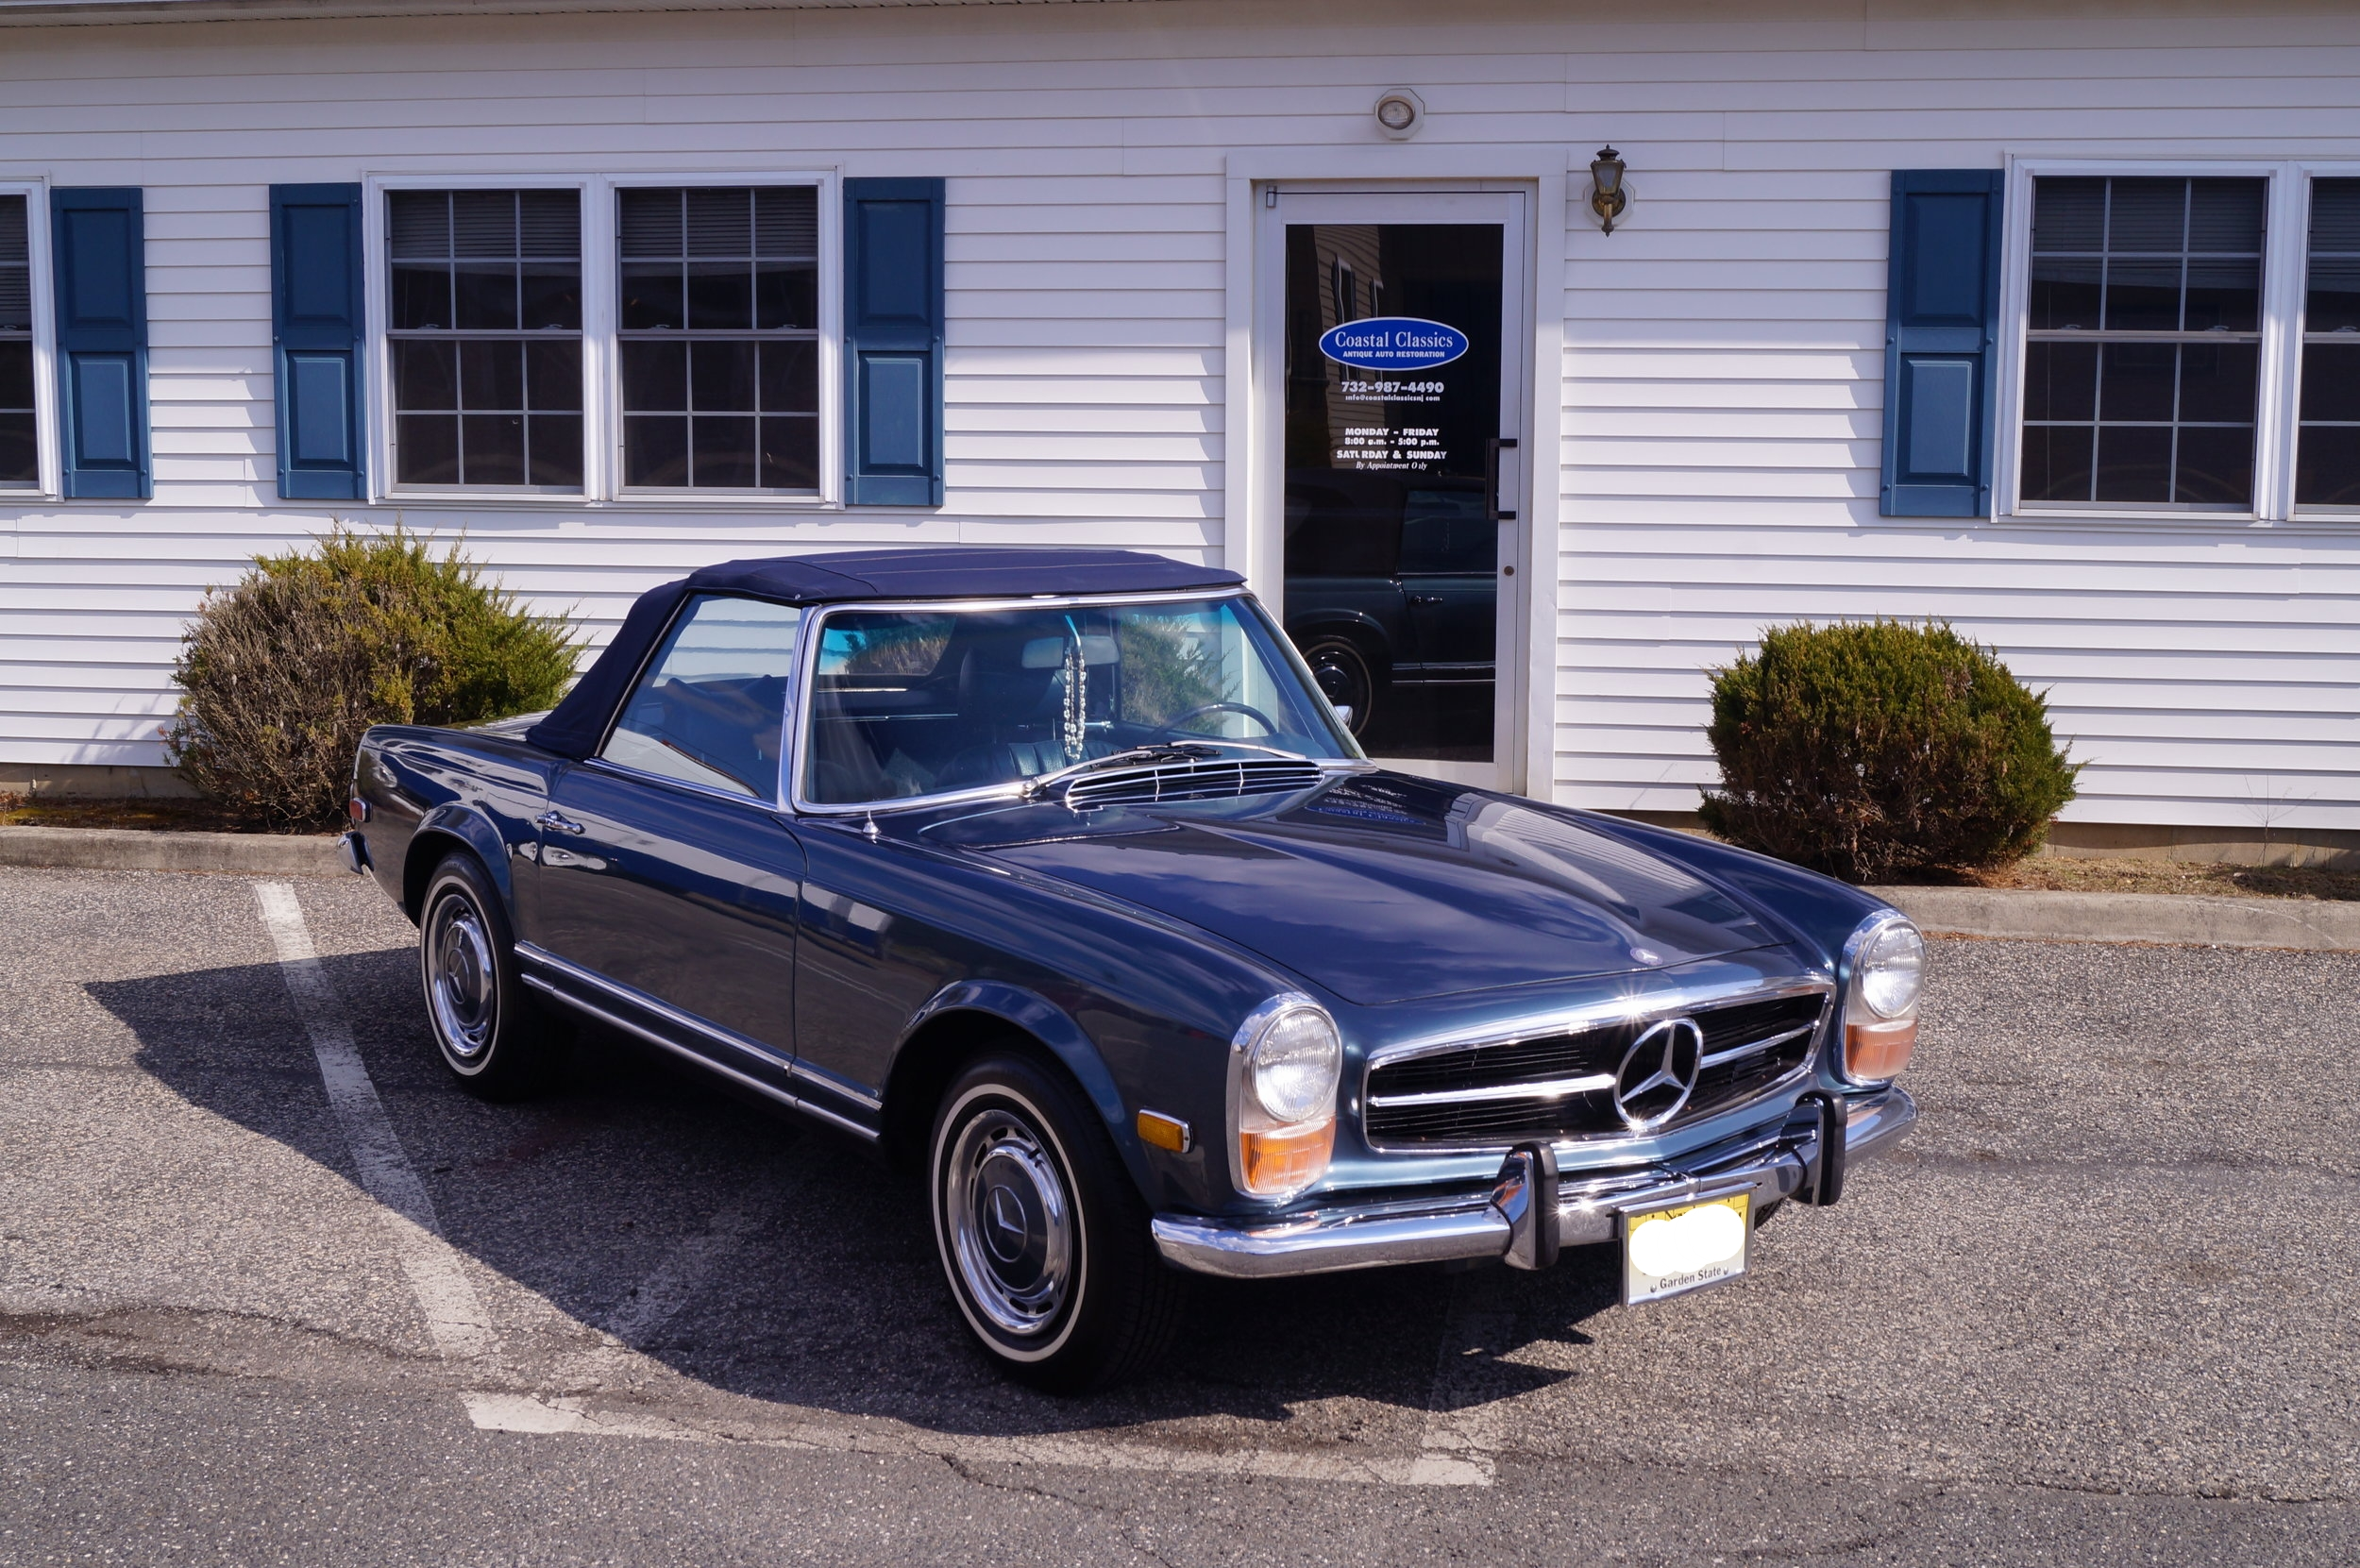 1970 Mercedes-Benz 280SL - This Mercedes is the perfect example of how our preservation services can keep a car going long after it had been seemingly forgotten. After sitting stationary for many years, time was beginning to take its toll. The paint was dull and beginning to oxidize. Spots of rust were adorning the chrome trim. The interior was, well, crusty, to put it lightly. And forget about running. The gas cap went missing some time ago, and in its place, tin foil was placed over the filler neck in attempt to stop anything from entering the fuel tank. It didn't work. Rain water got in and rotted out the tank. But this car had